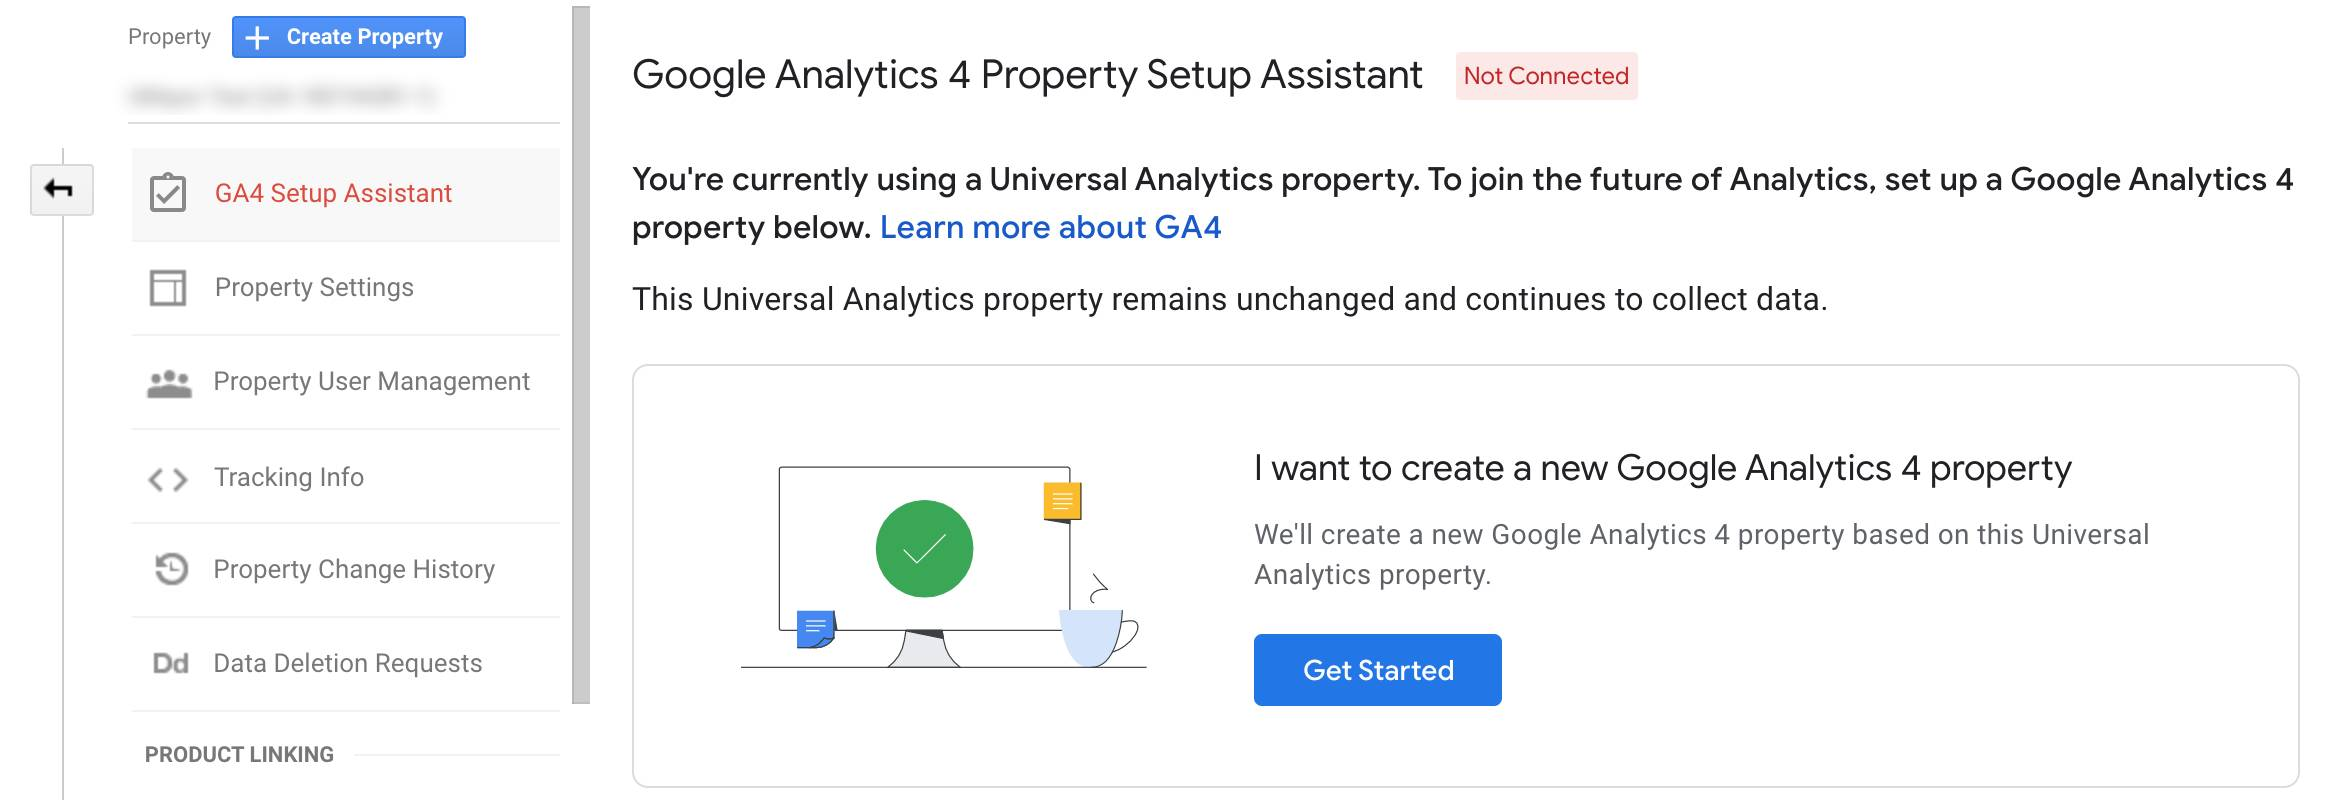 google analytics 4 property assistant select get started